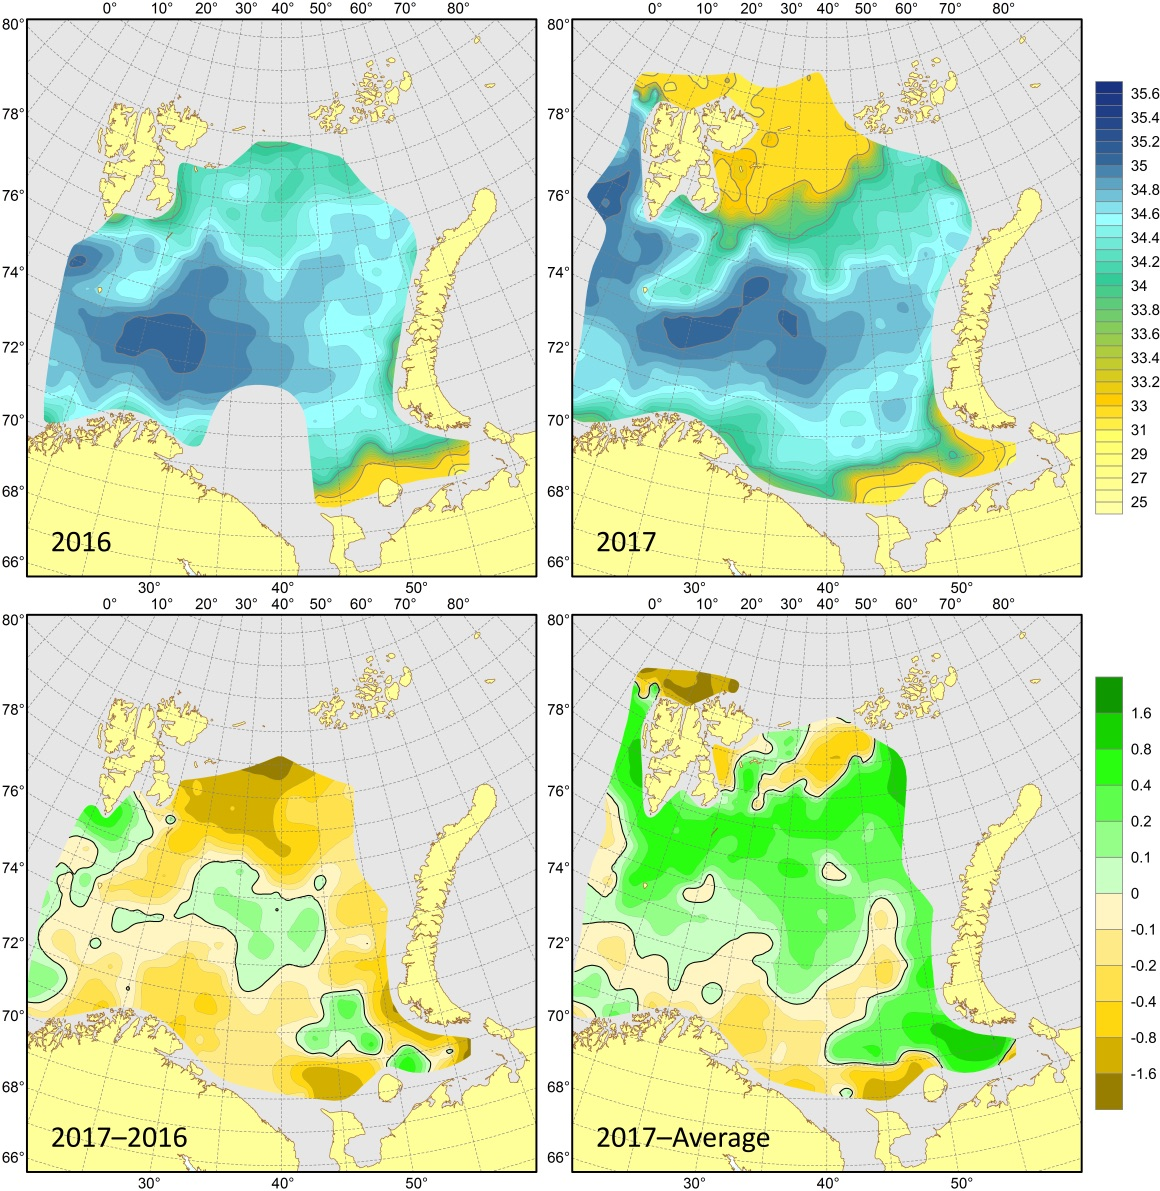 Figure 3.1.12. Surface salinities in August–October 2016 (upper left) and 2017 (upper right), their differences between 2017 and 2016 (lower left) and anomalies in August–October 2017 (lower right).